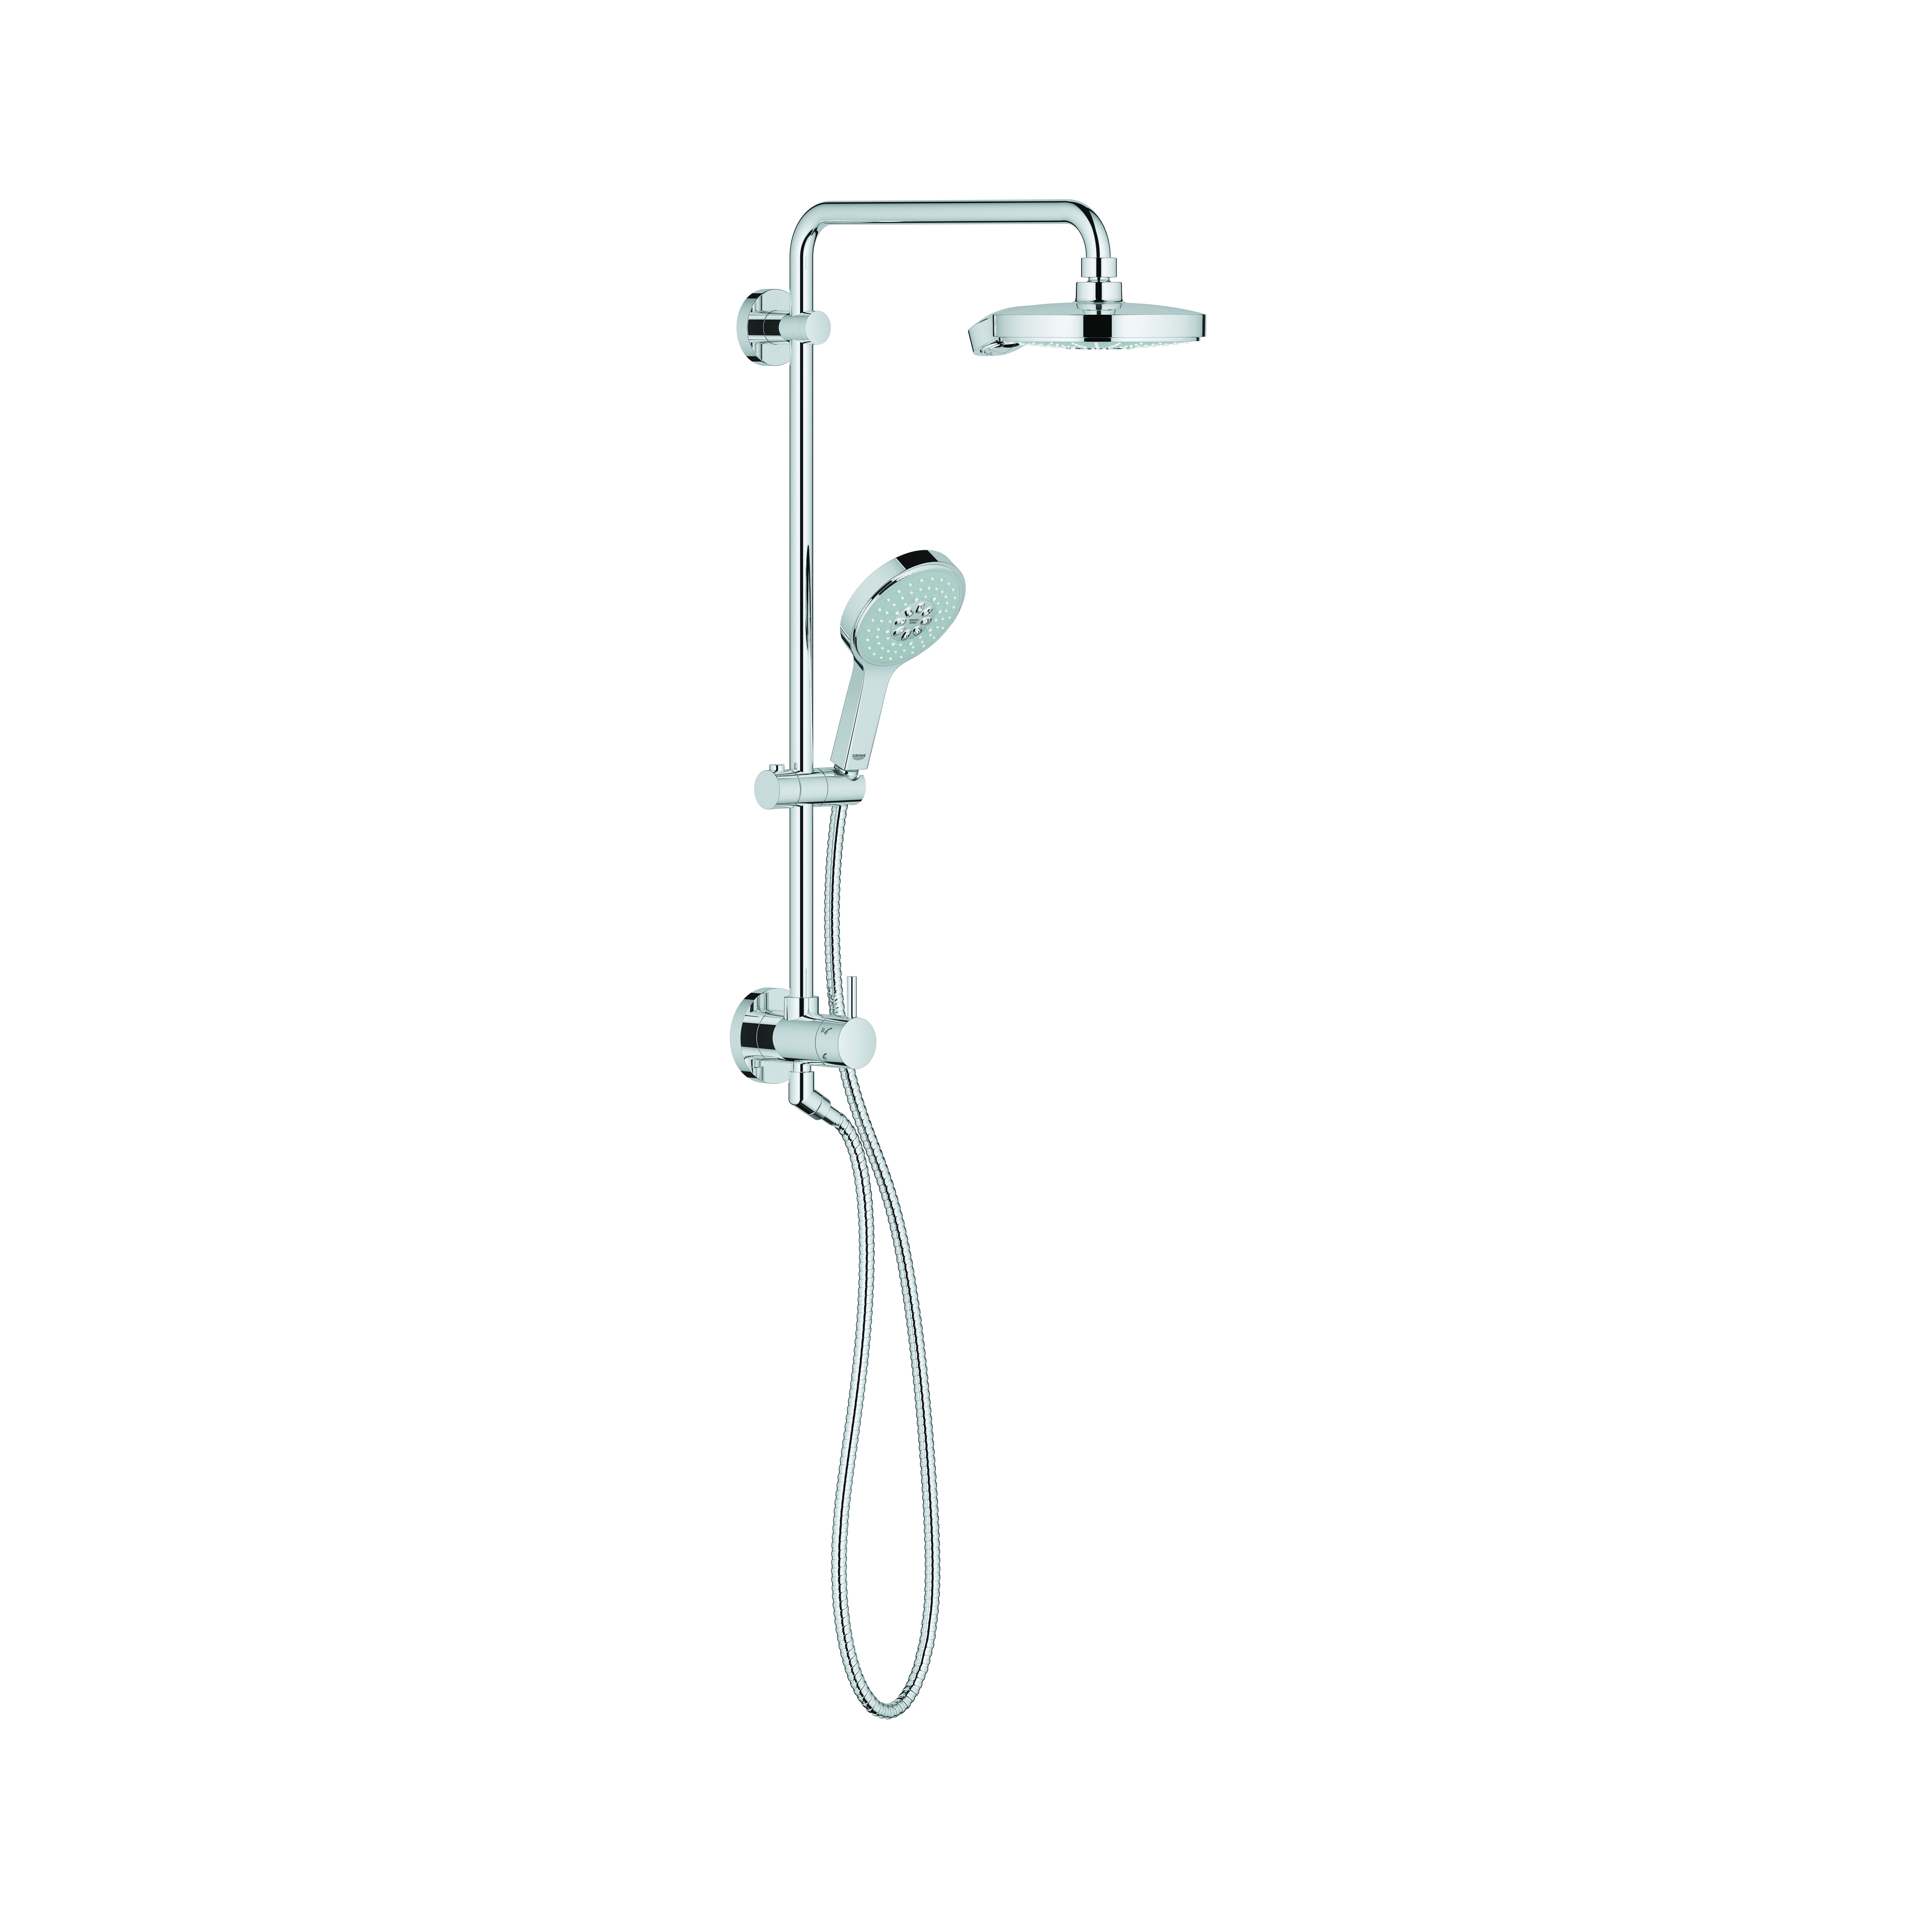 GROHE 26127000 Power&Soul® Cosmopolitan Retro-Fit Shower System With Ball Joint, 2.5 gpm, StarLight® Chrome Plated, Import